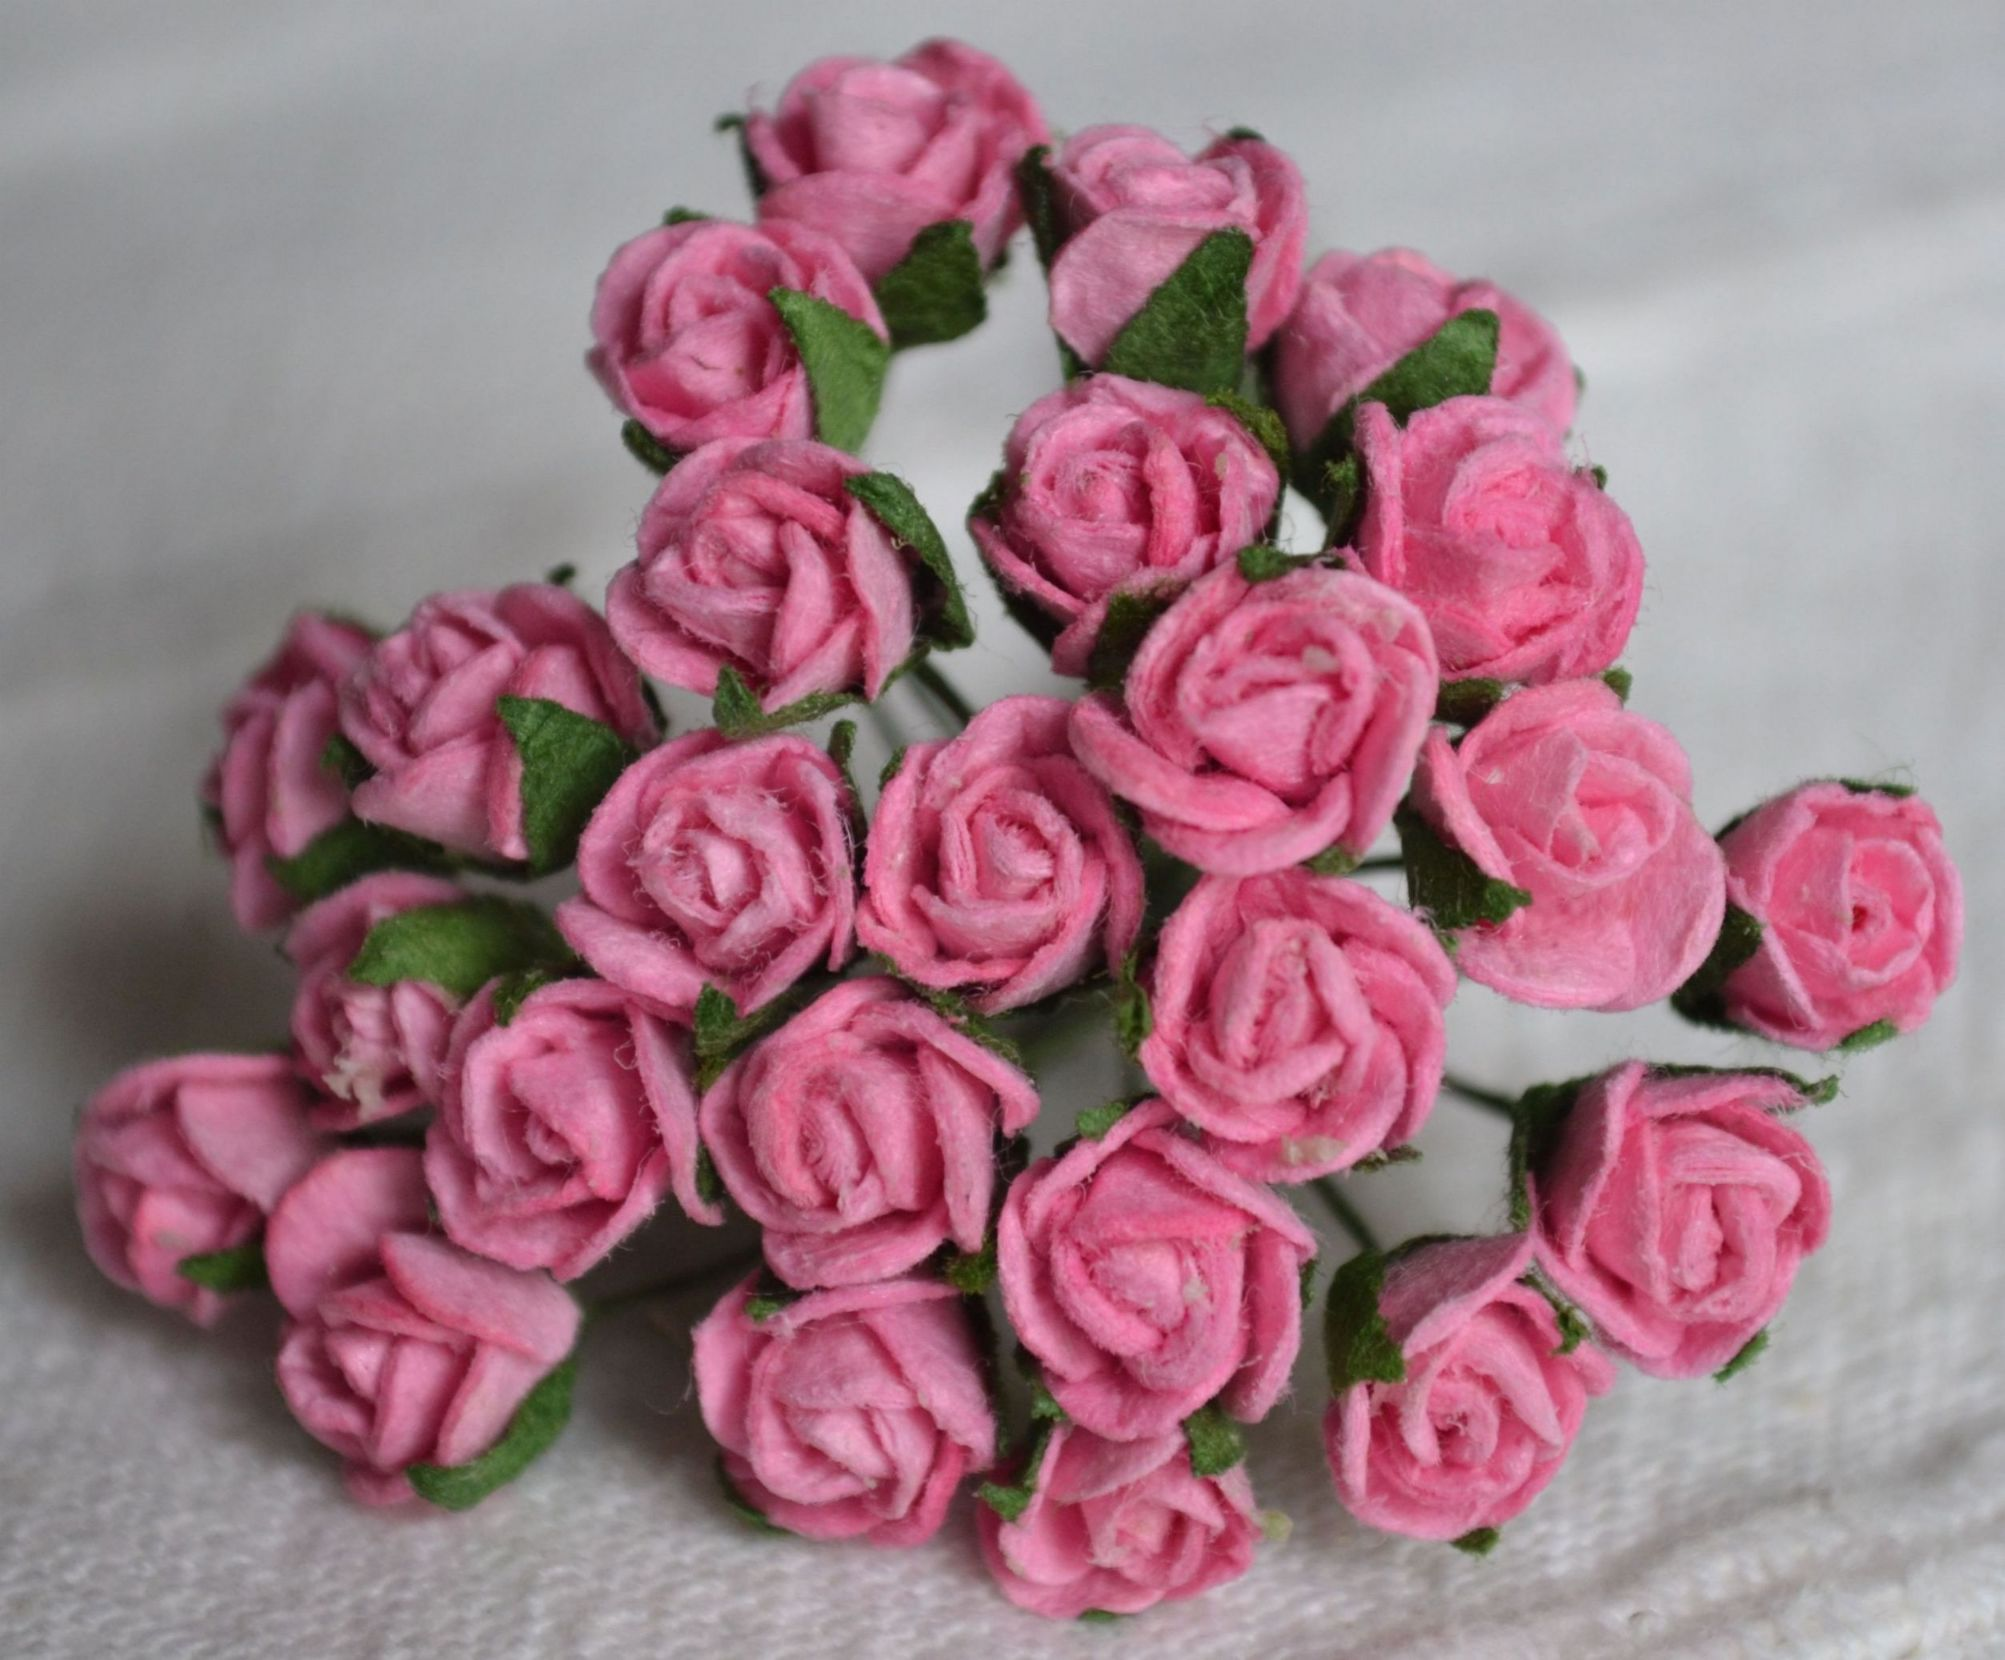 8mm Pink Semi Open Rose Buds Mulberry Paper Flowers